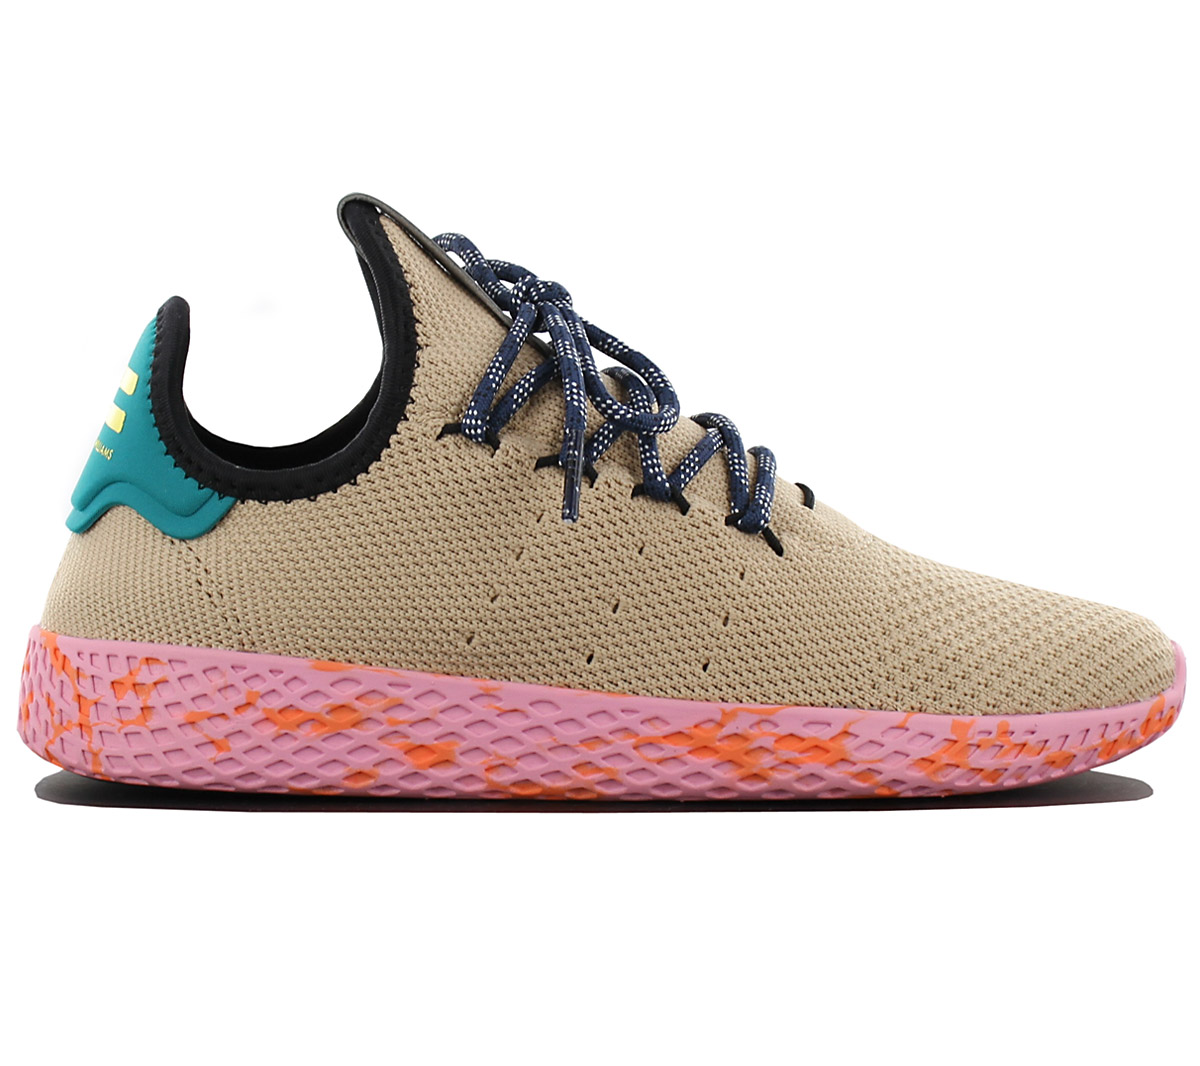 8c11a6ac9e74 Adidas Pharell Williams Pw Tennis Hu Ladies Trainers Shoes By2672 ...